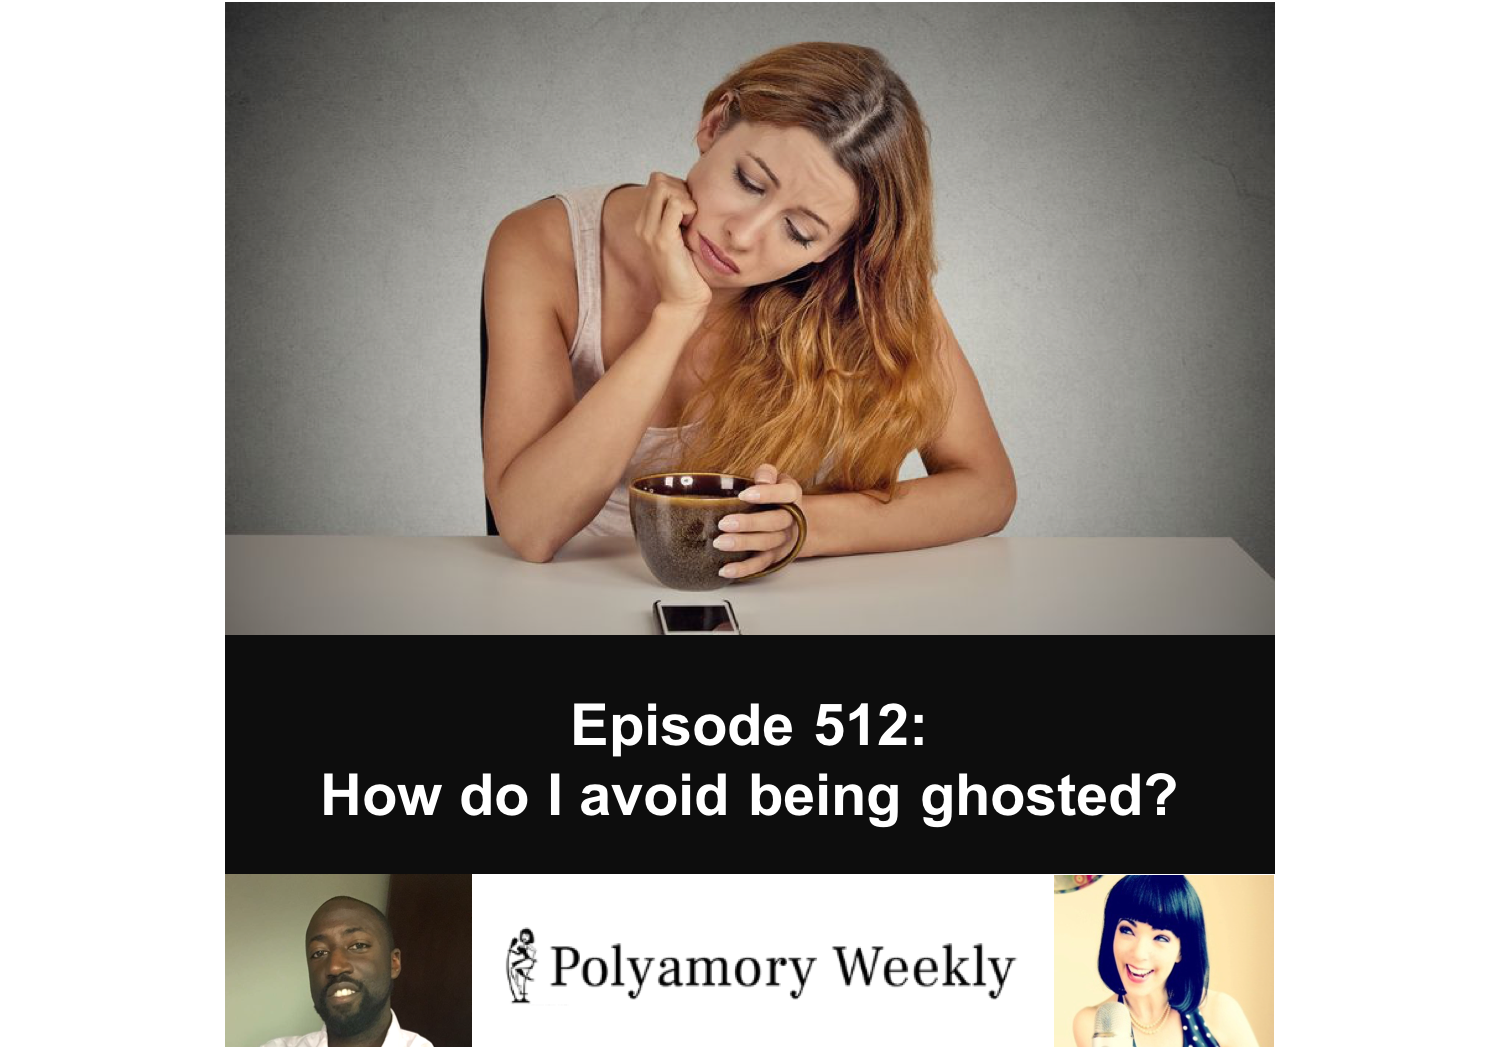 512: How do I avoid being ghosted?